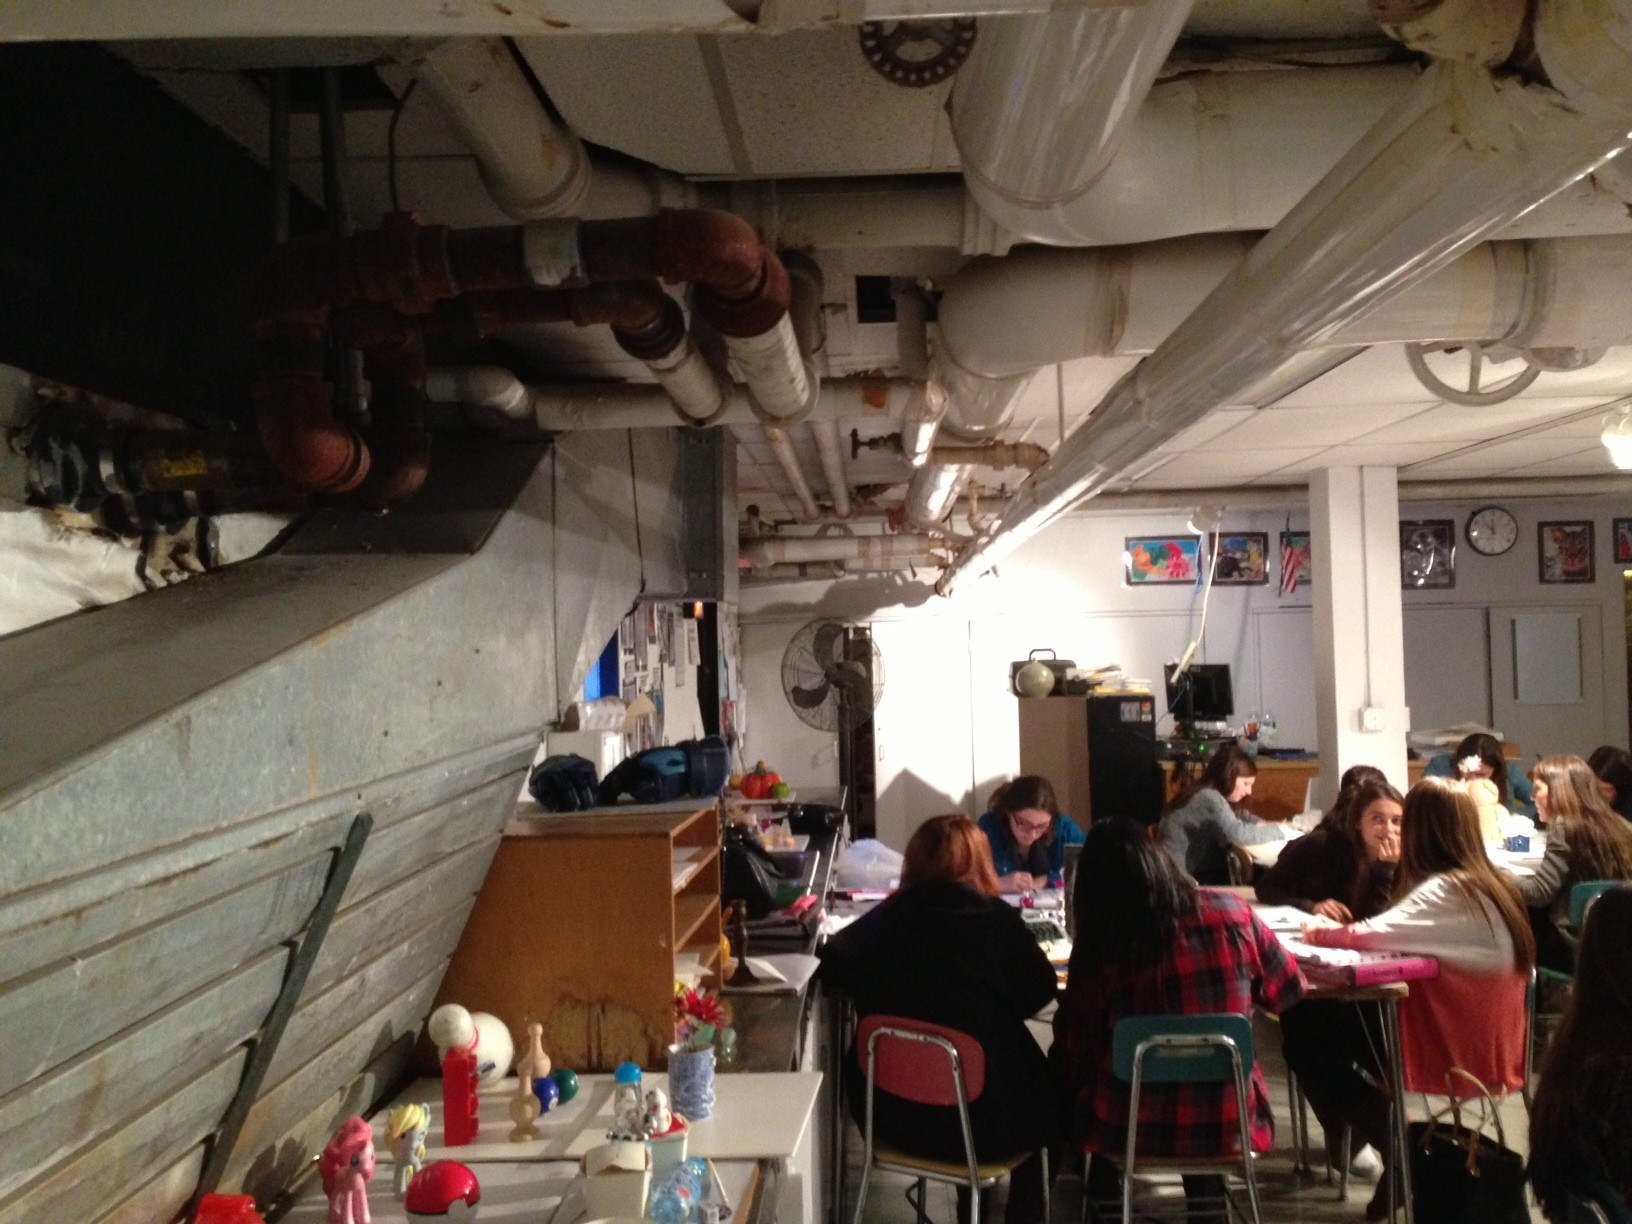 Mepham students take art in the basement, with heating and water pipes overhead.